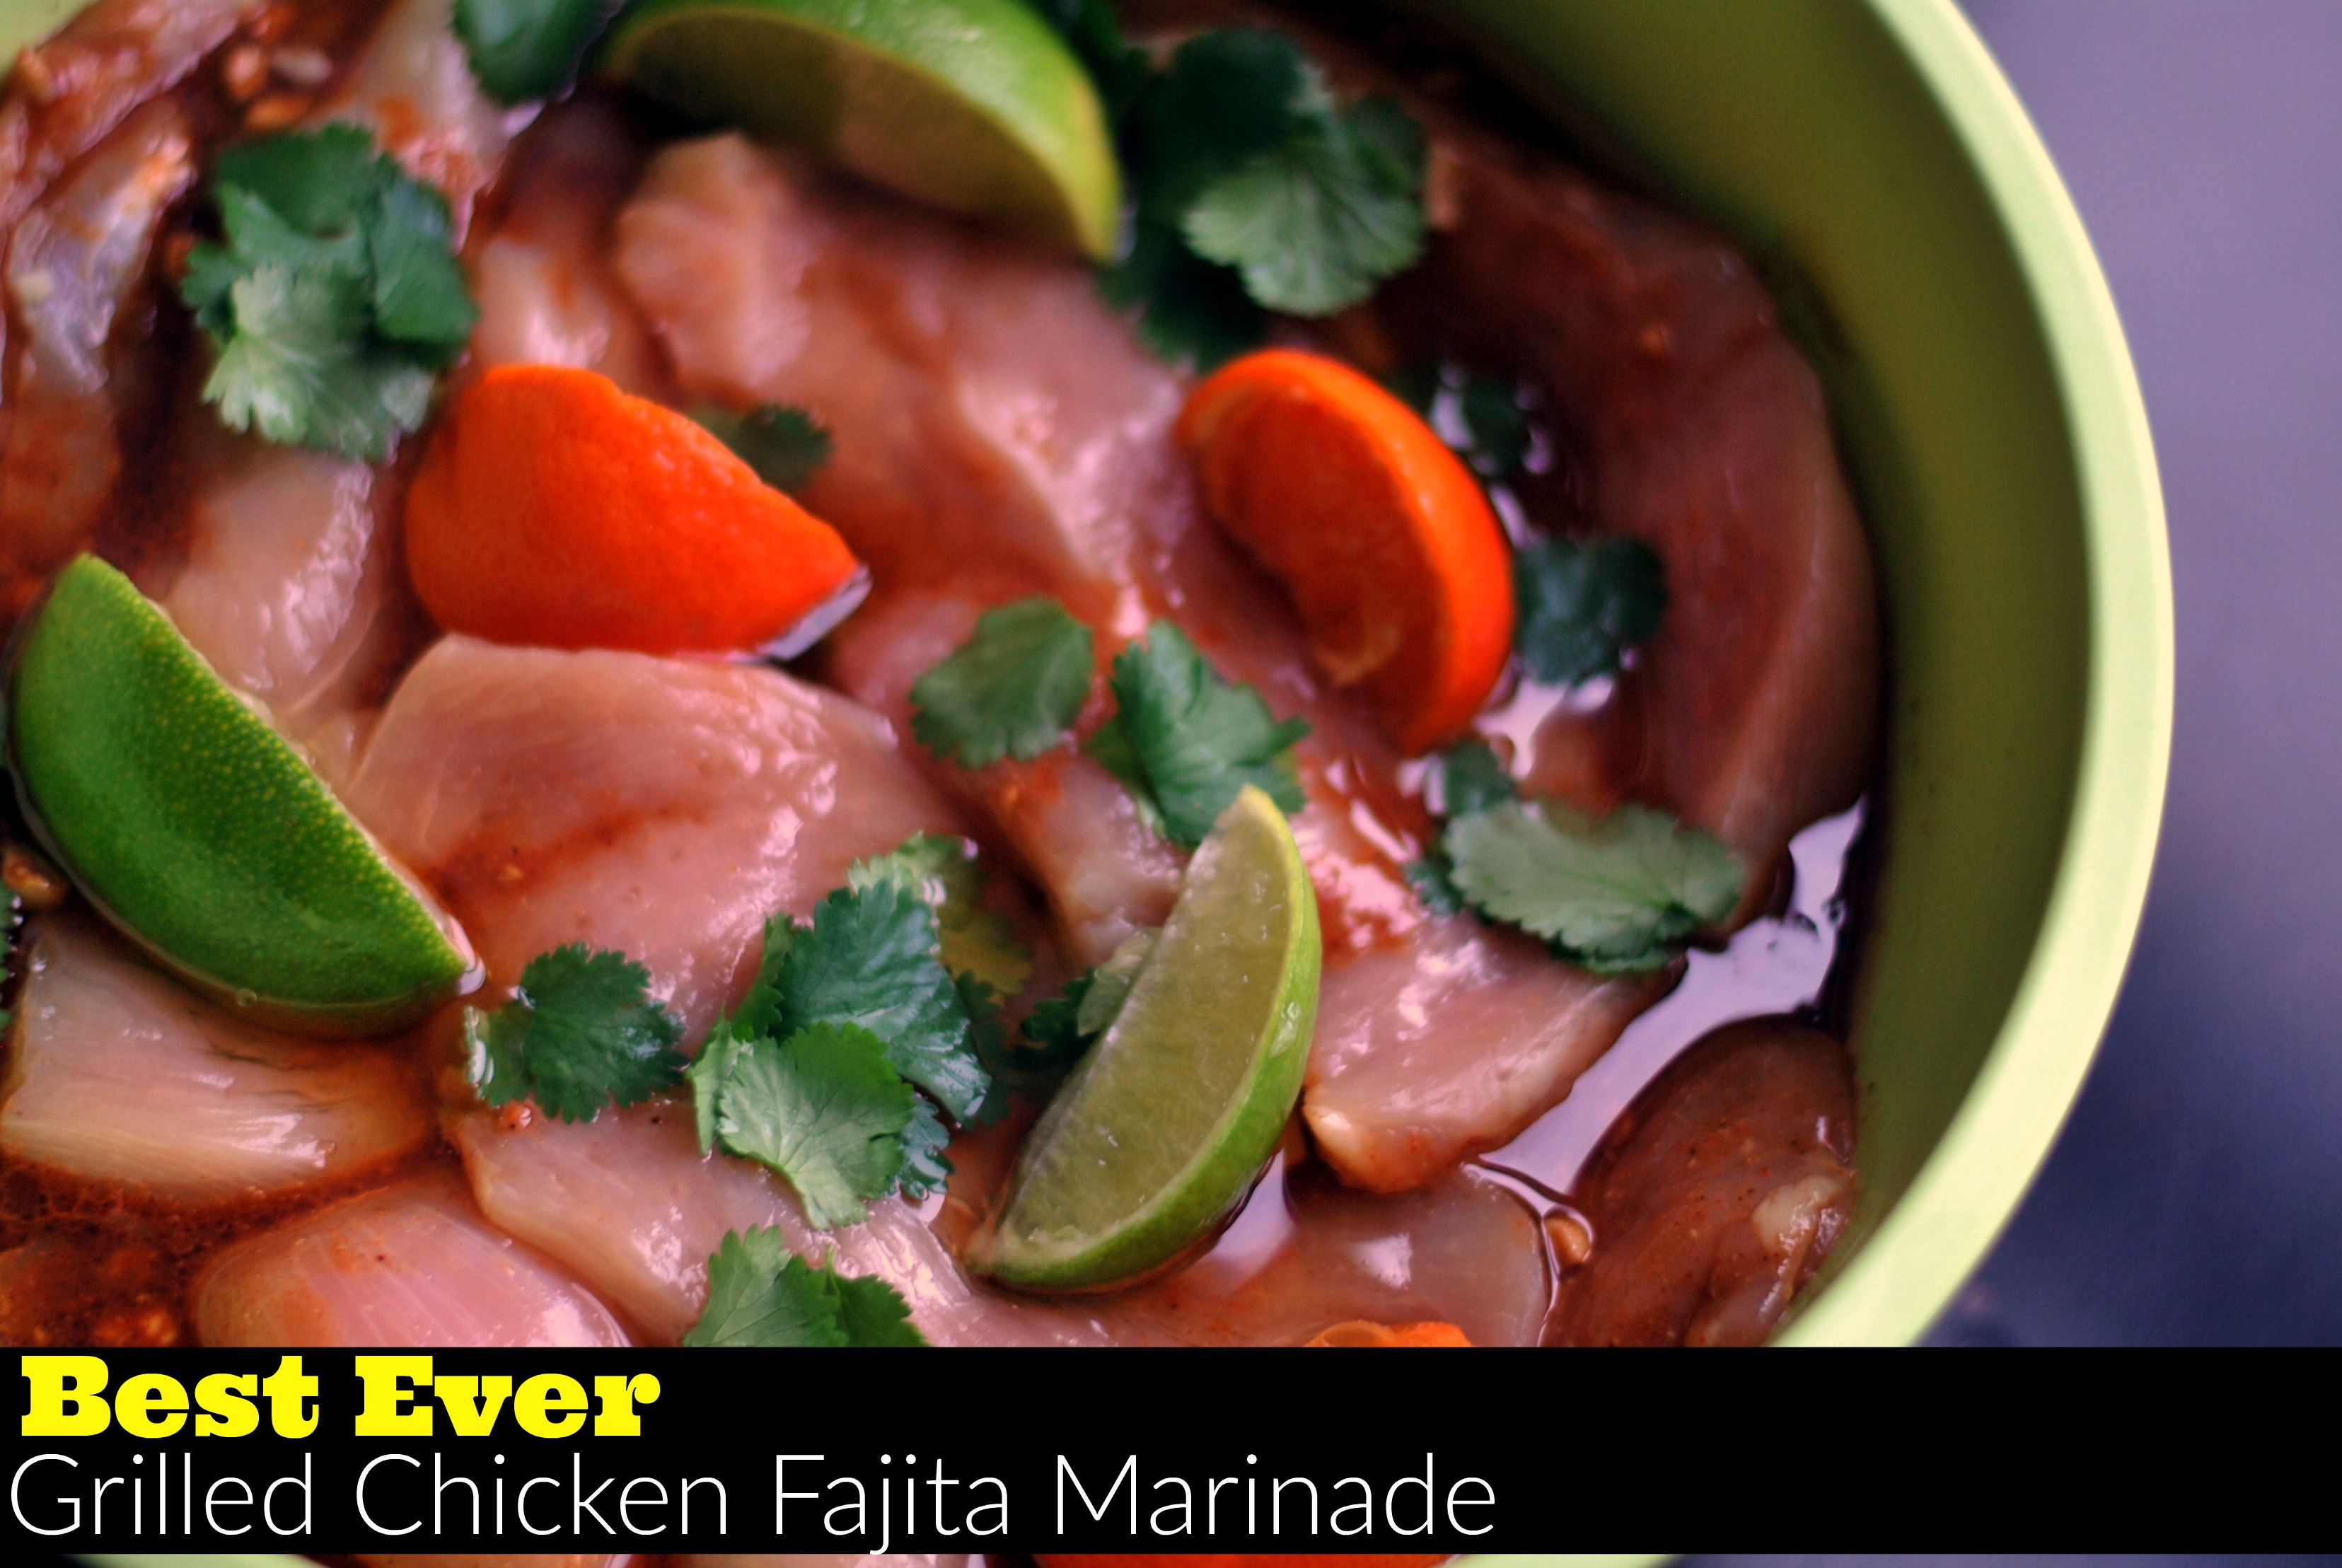 Best Ever Grilled Chicken Fajita Marinade